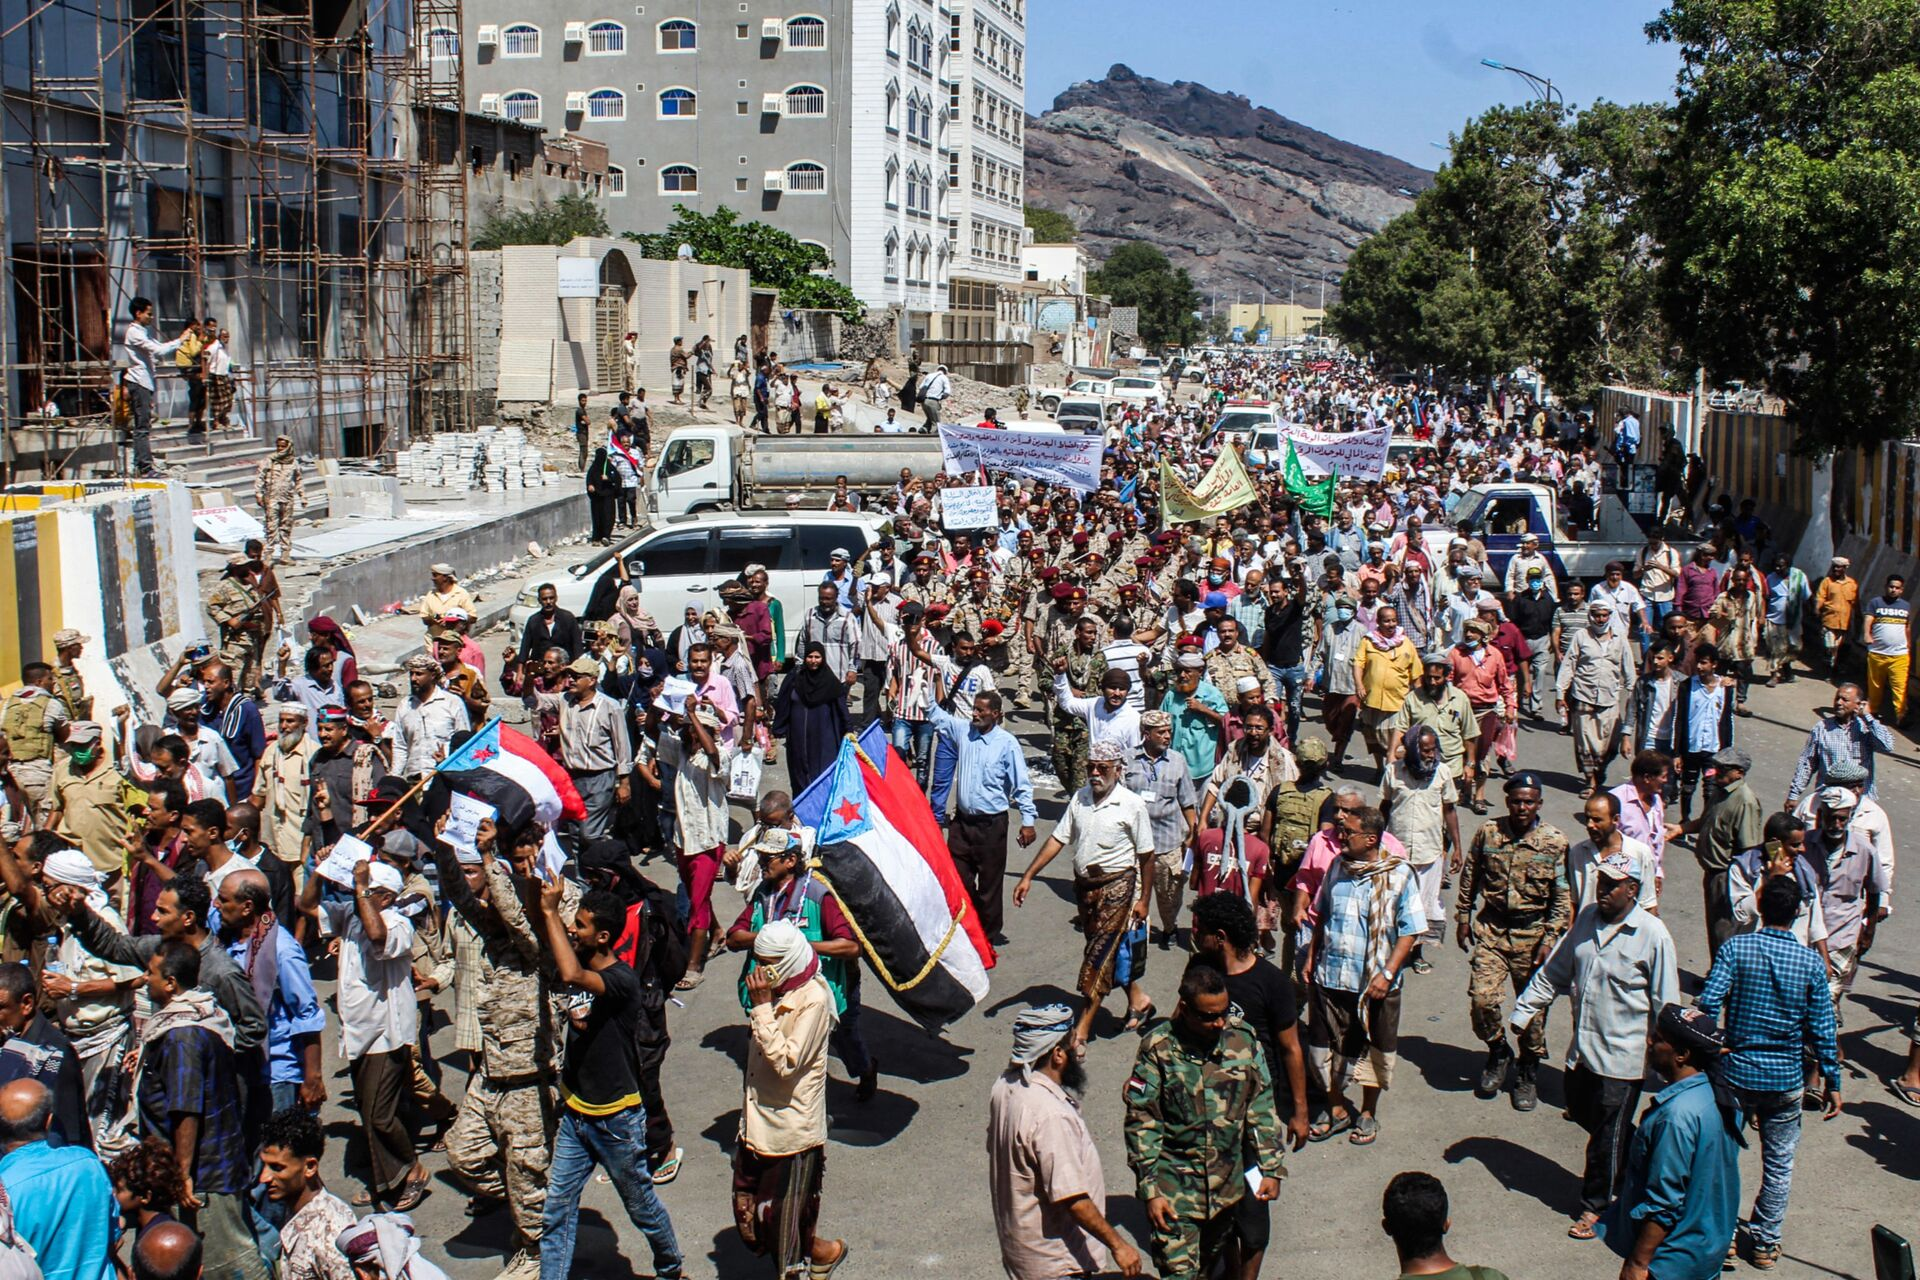 Protesters, some raising the old flag of South Yemen, gather to demonstrate against deteriorating services and economic conditions, outside the internationally-recognised Yemeni government's headquarters at al-Maashiq Palace in the Crater district of the southern port city of Aden on March 16, 2021 - Sputnik International, 1920, 07.09.2021